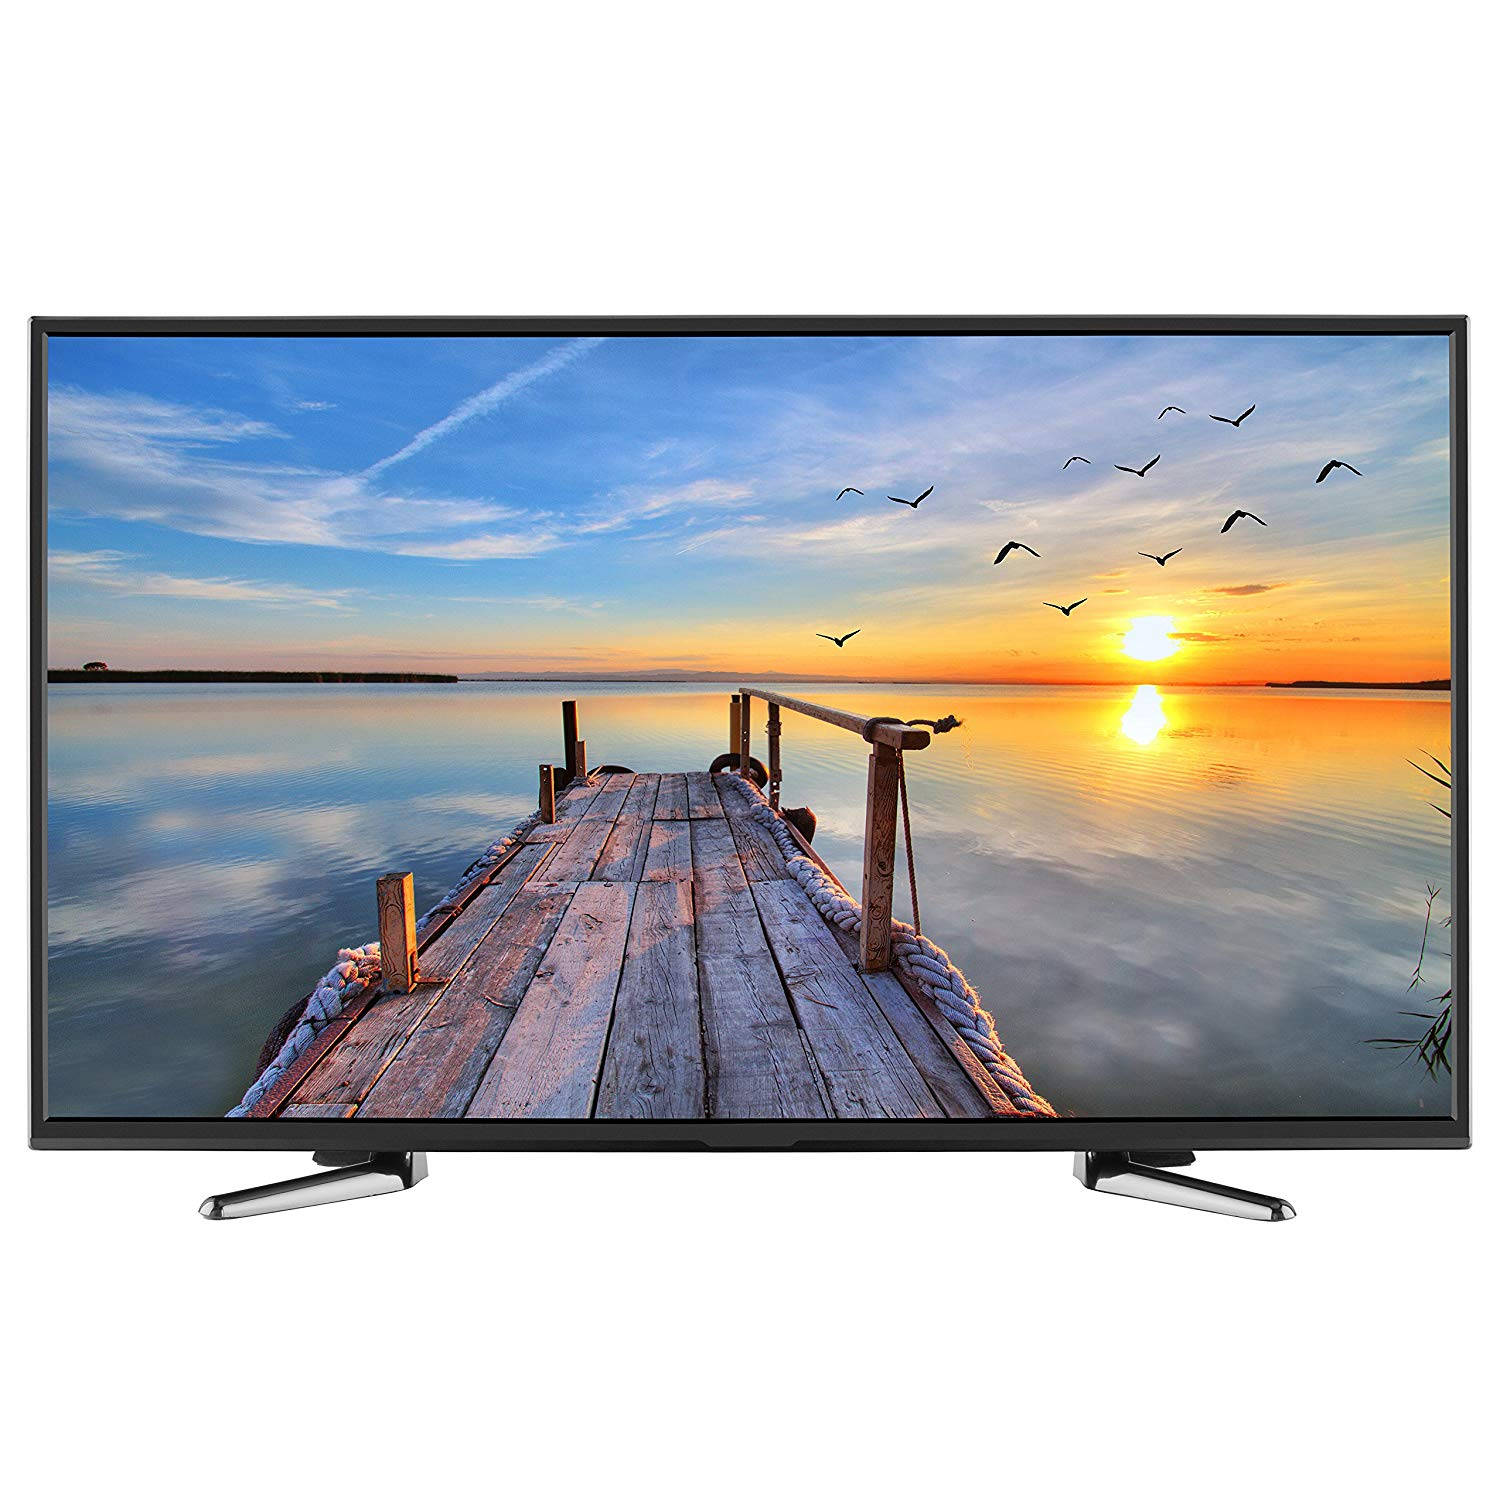 Image of HKC 40K7A - Full HD LED tv